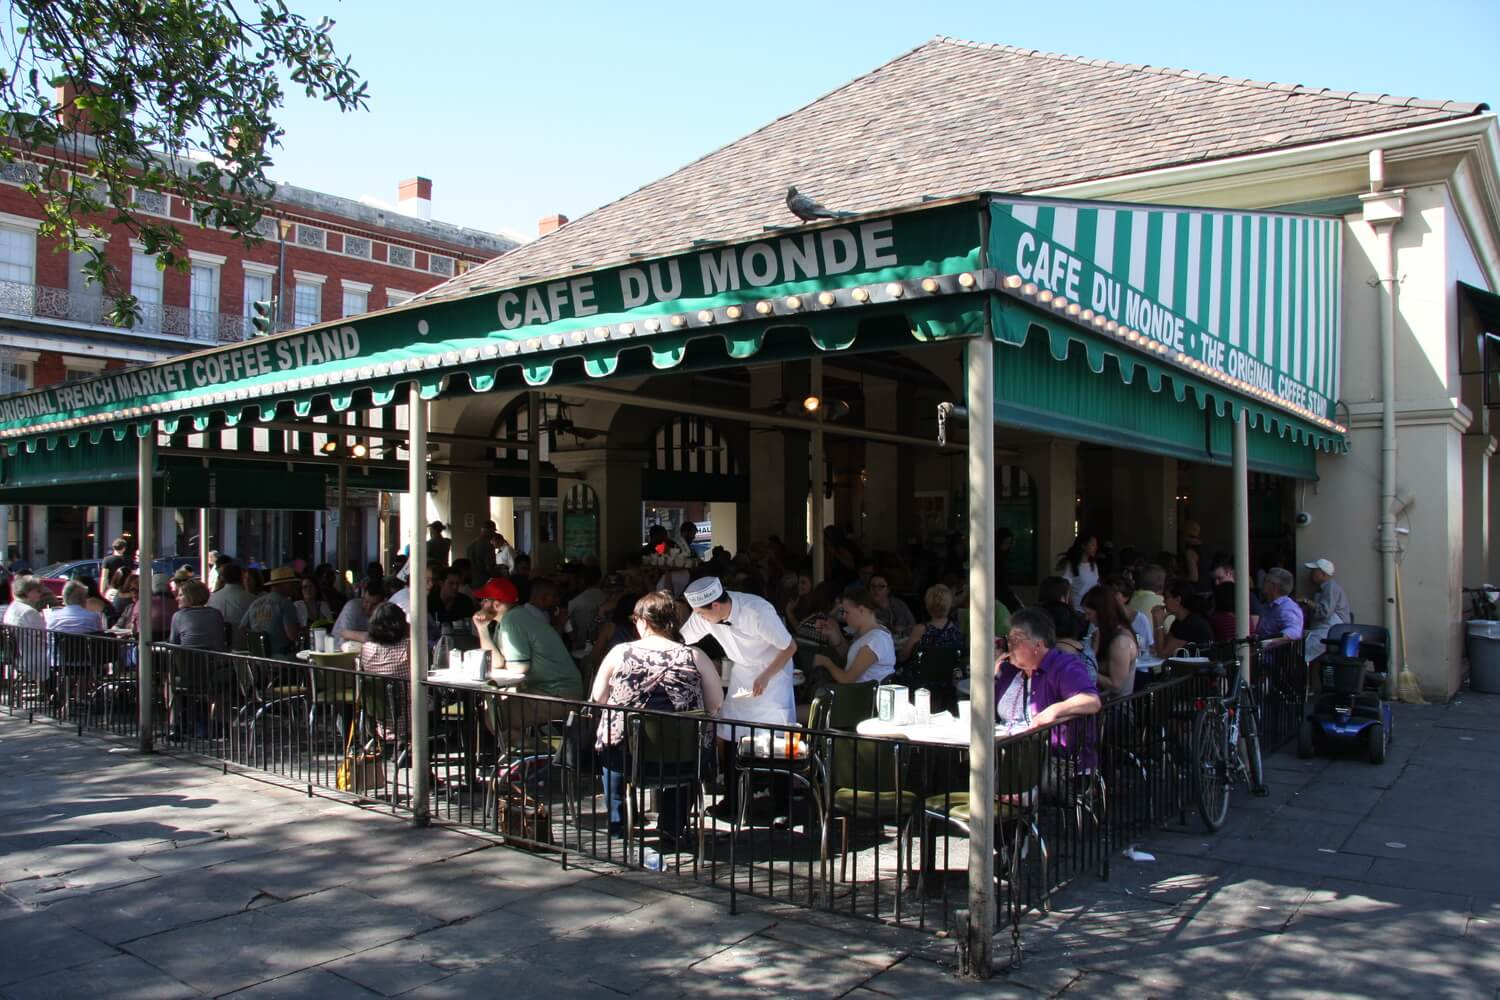 Café Du Monde in the French Quarter of New Orleans. #2 in Best Things to Do in the French Quarter.